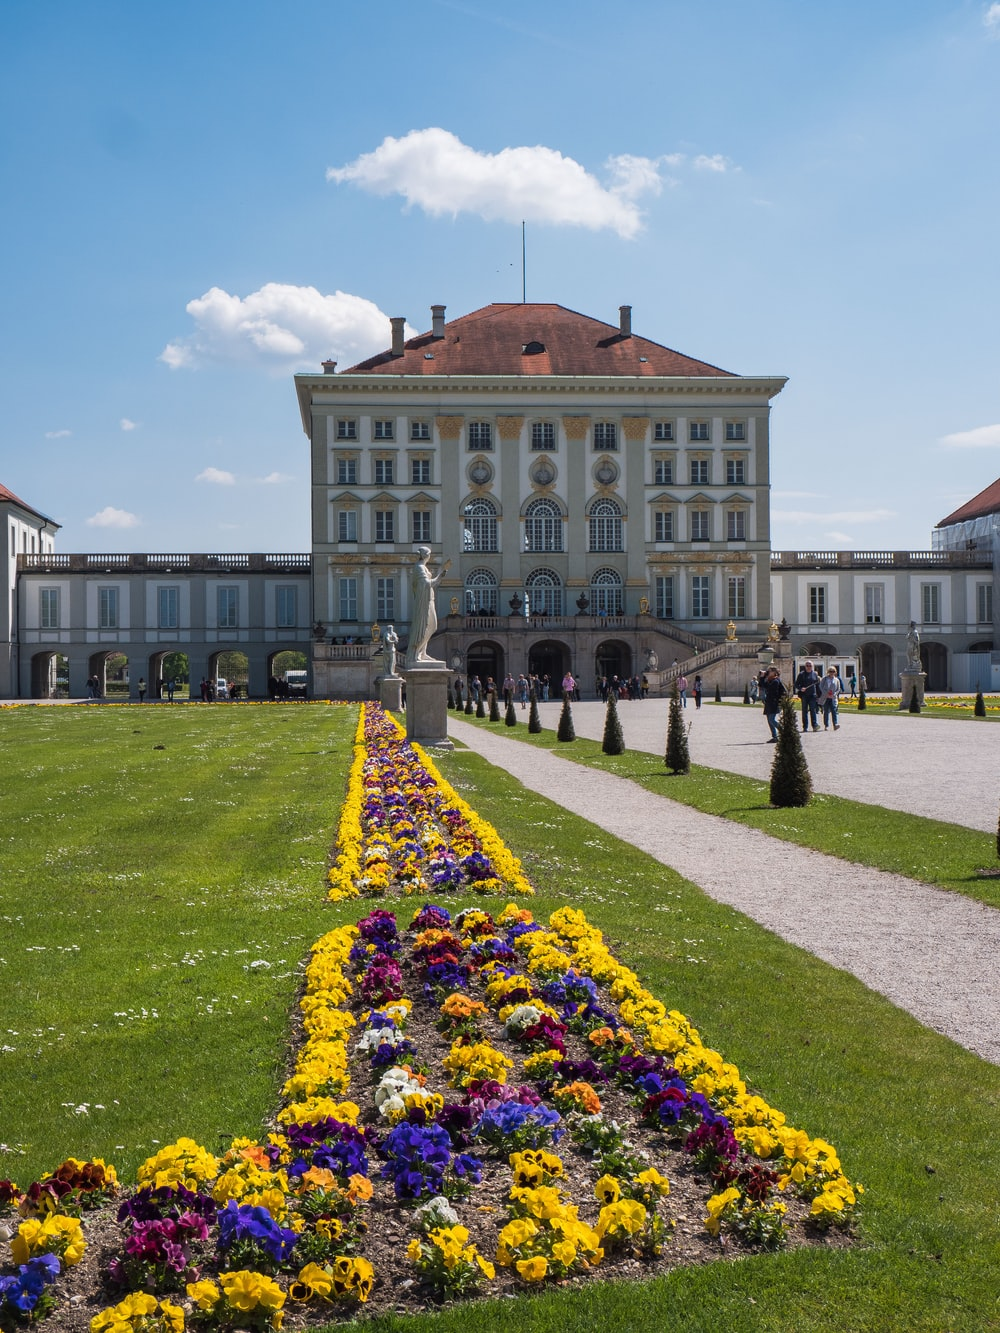 people walking near Nymphenburg Palace in Munich, Germany under blue and white sky